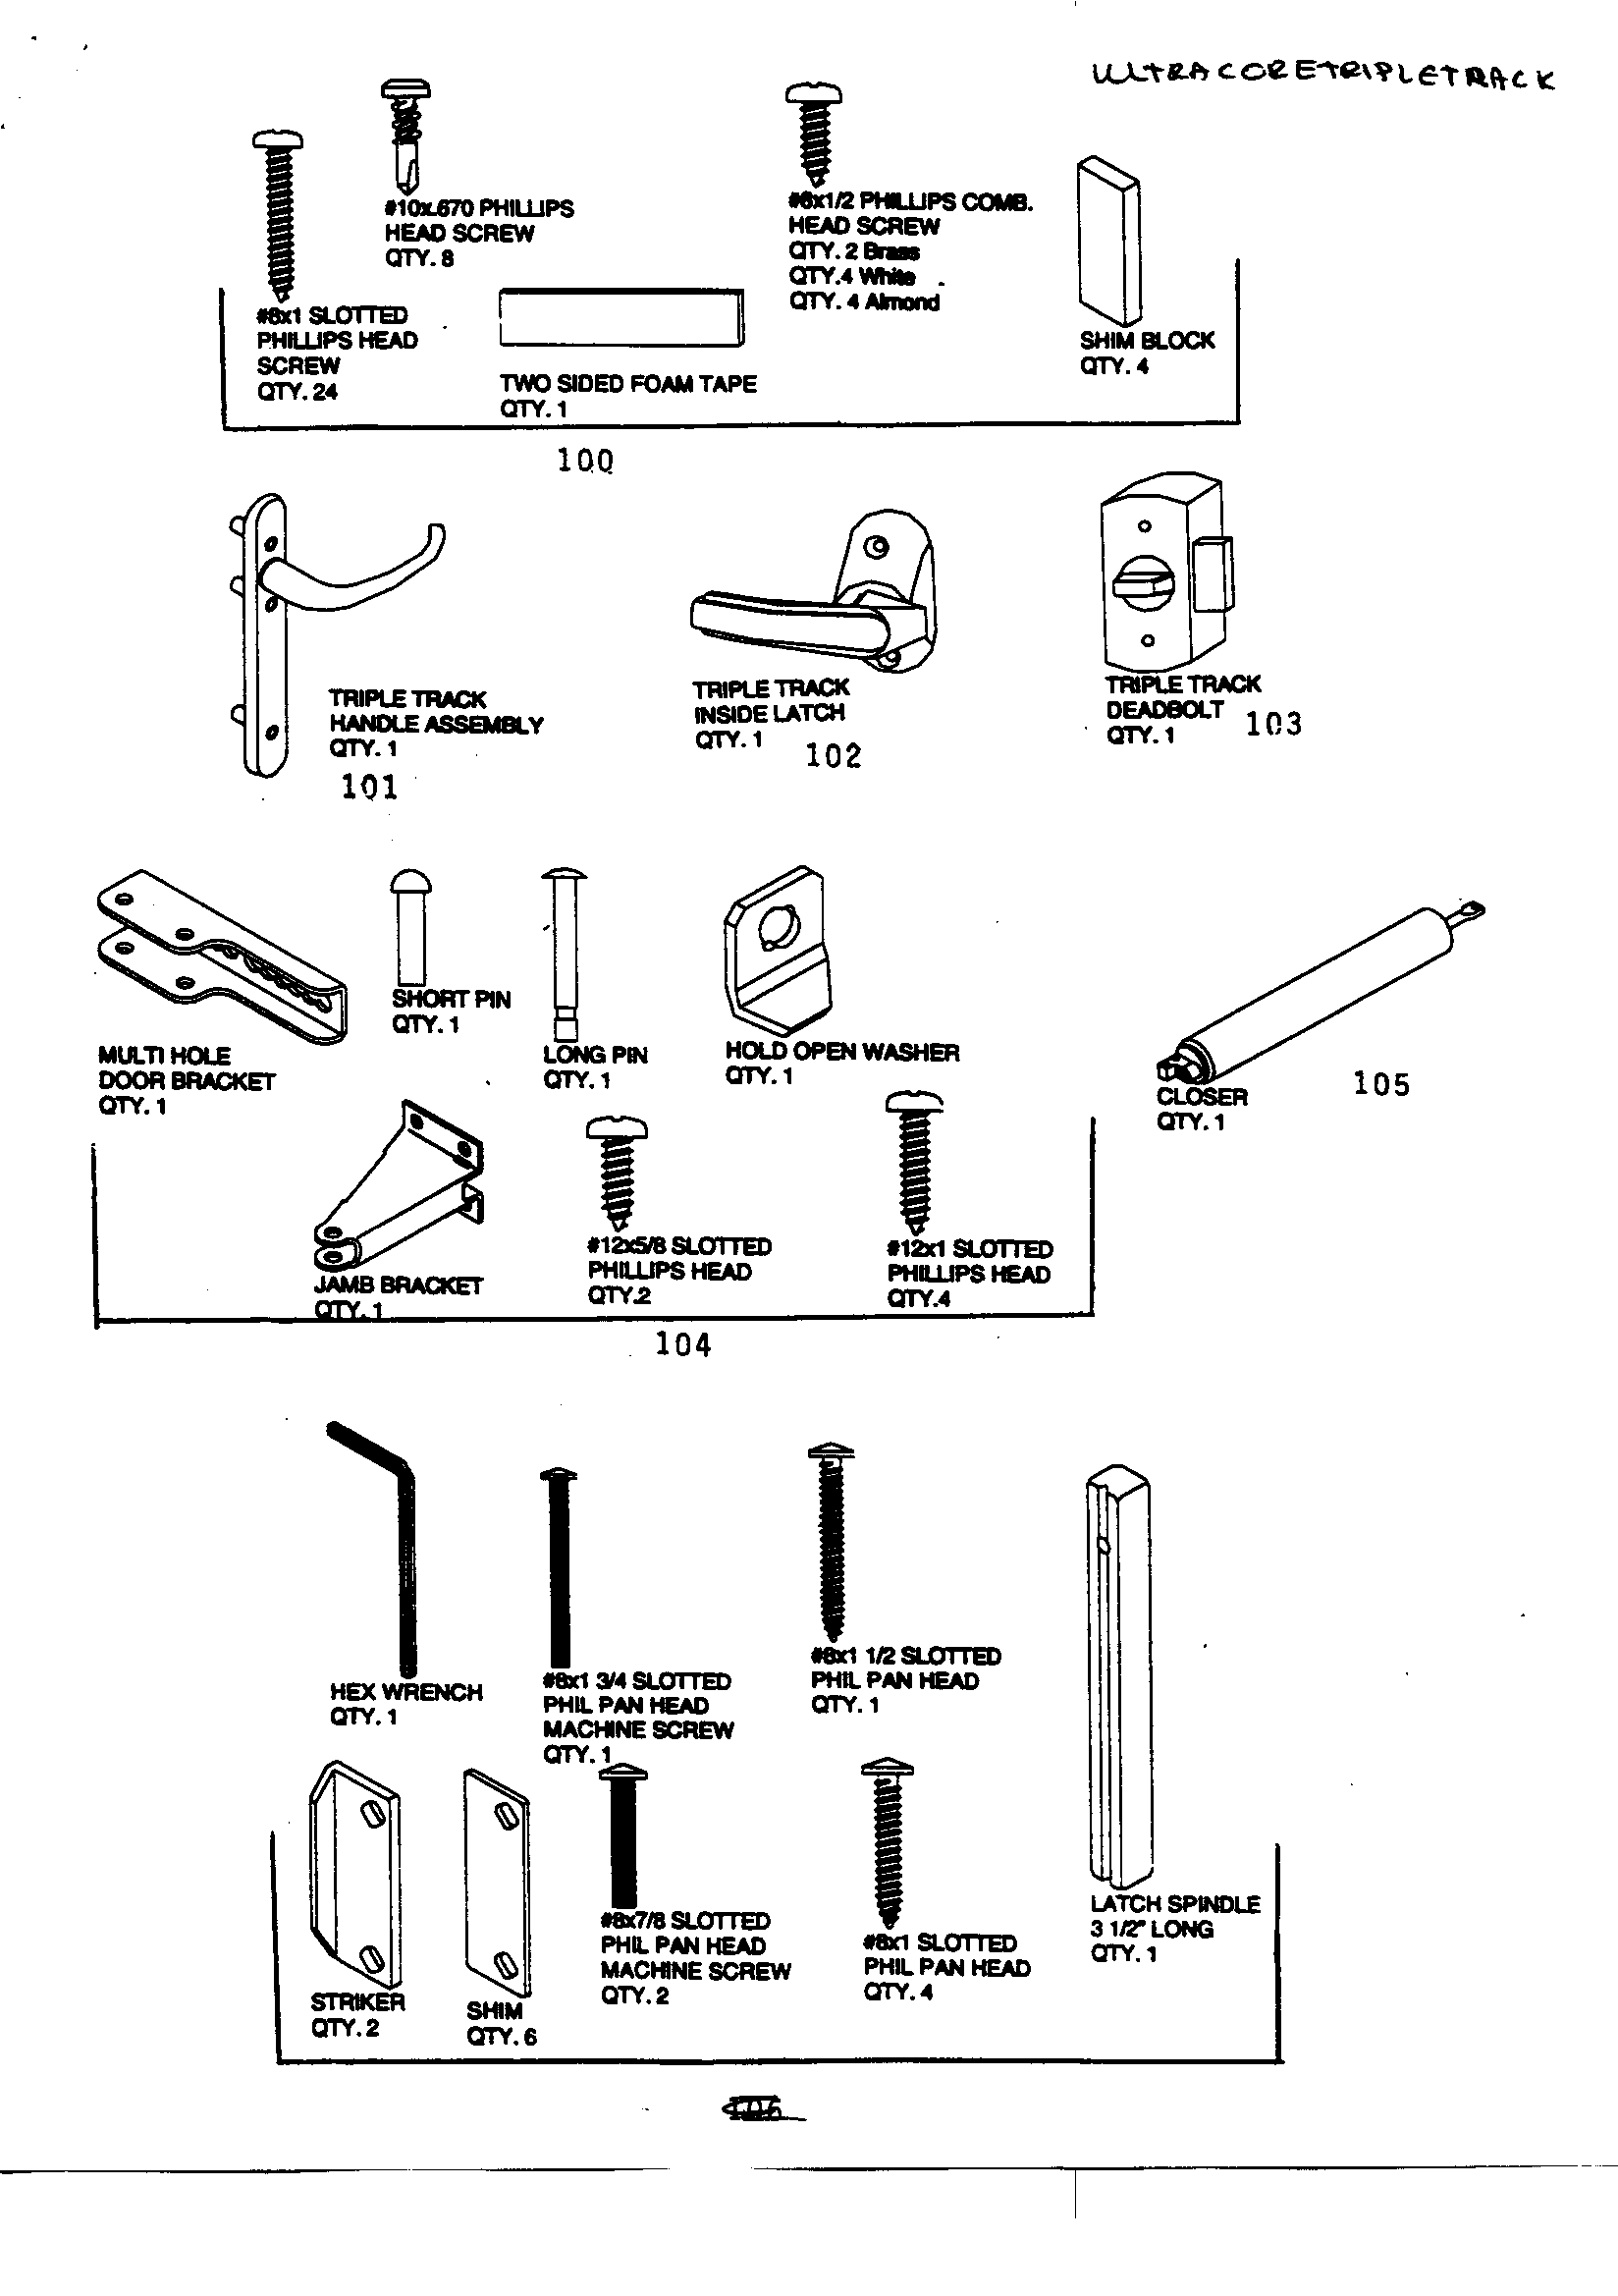 [DIAGRAM] Wiring Diagram Sears Garage Door Opener FULL